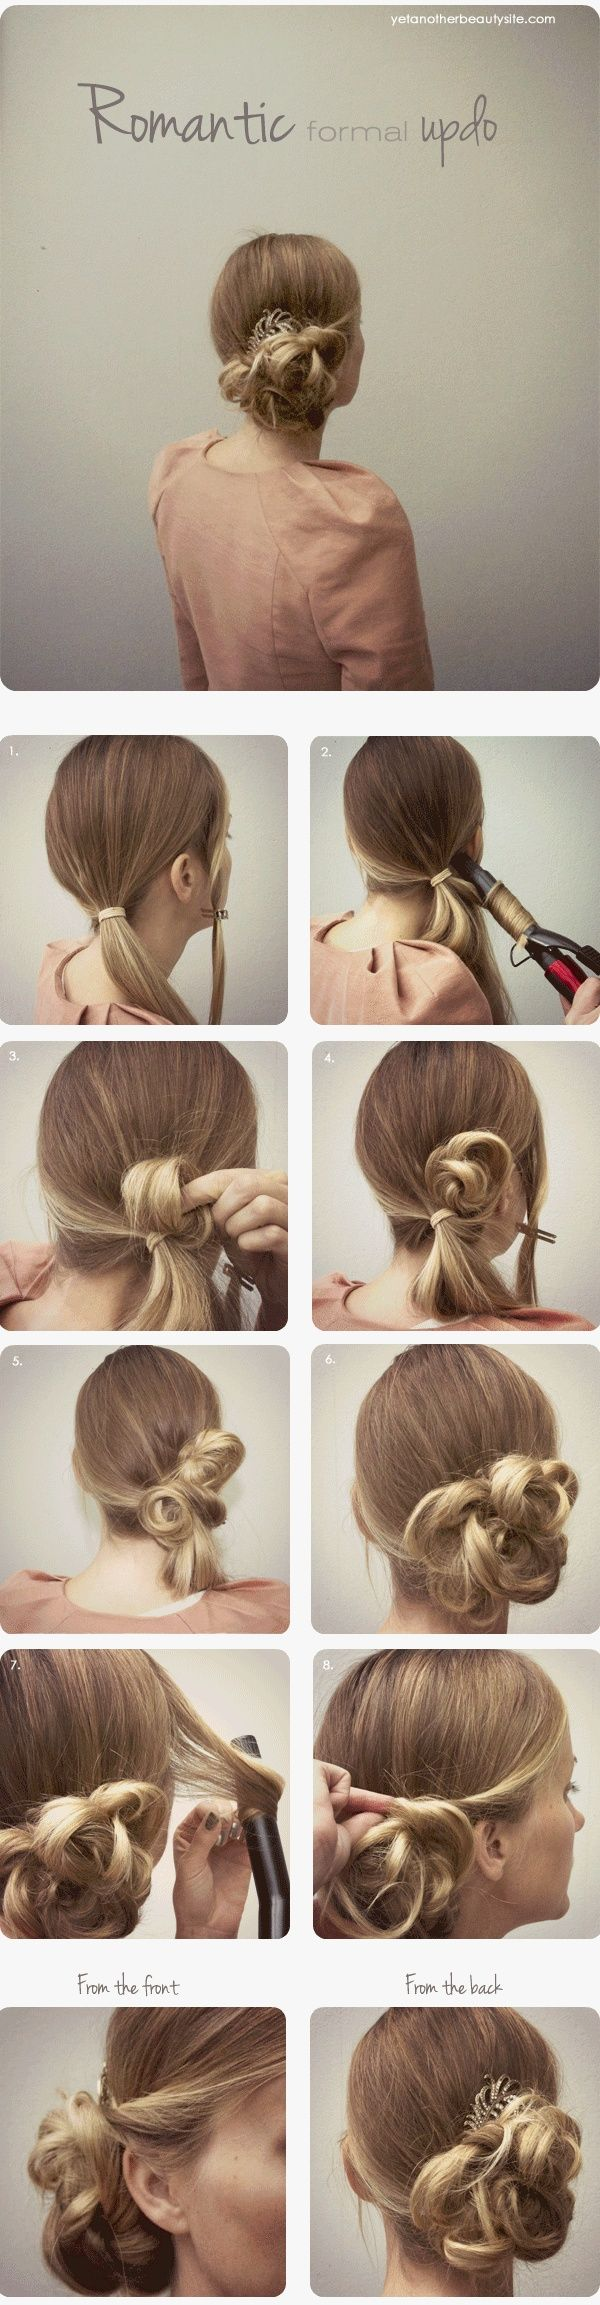 #HairStyle #DIY of the #Day #easyupdo